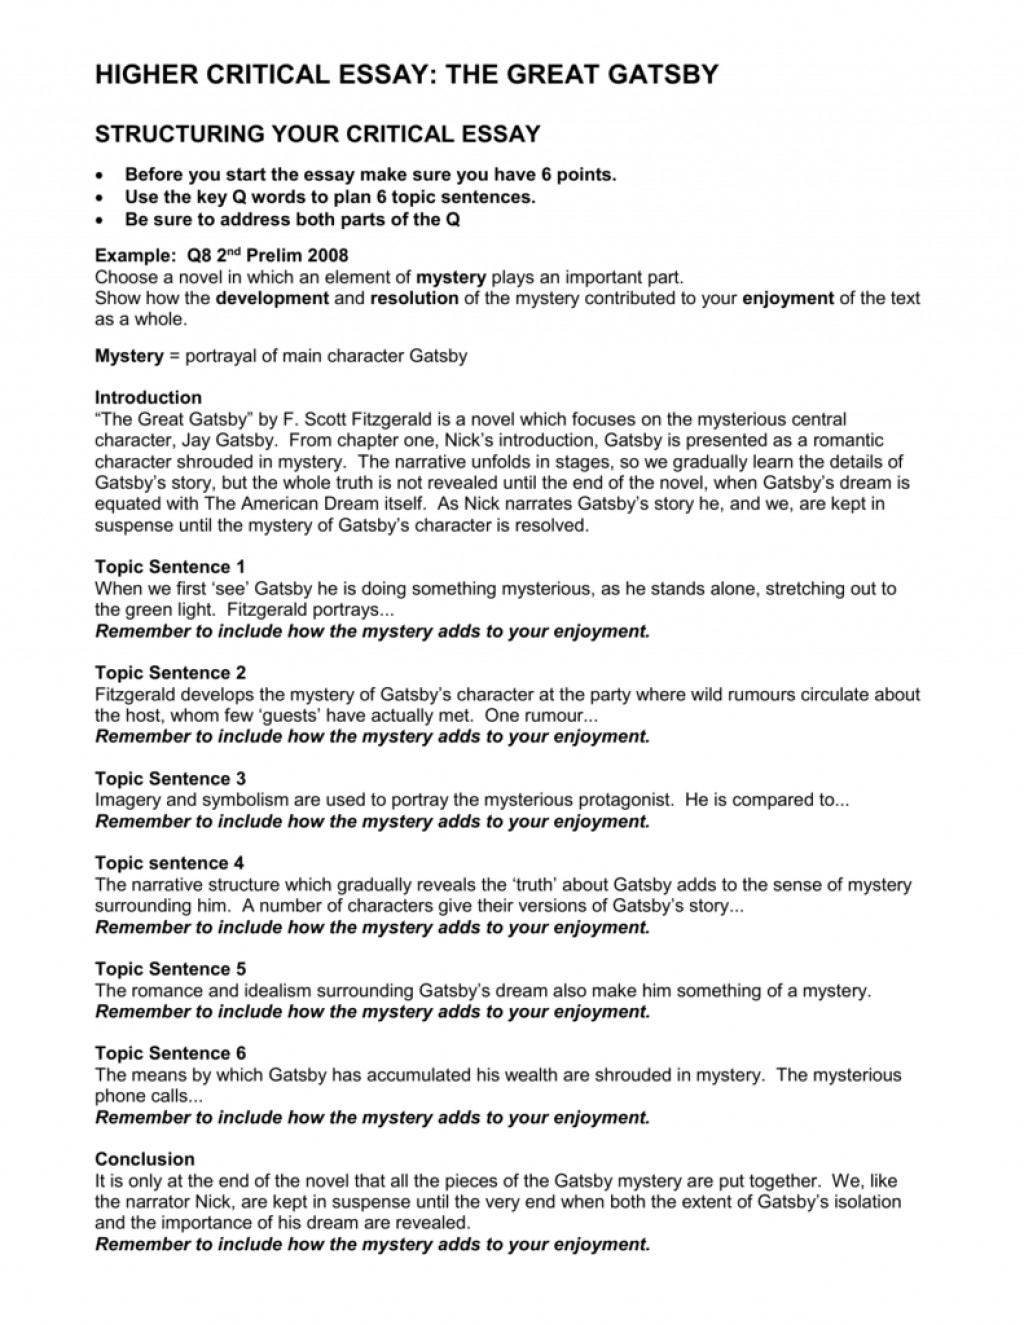 005 008039515 1 Gatsby Essay Fascinating Higher English Great Plans Thesis Conclusion Large